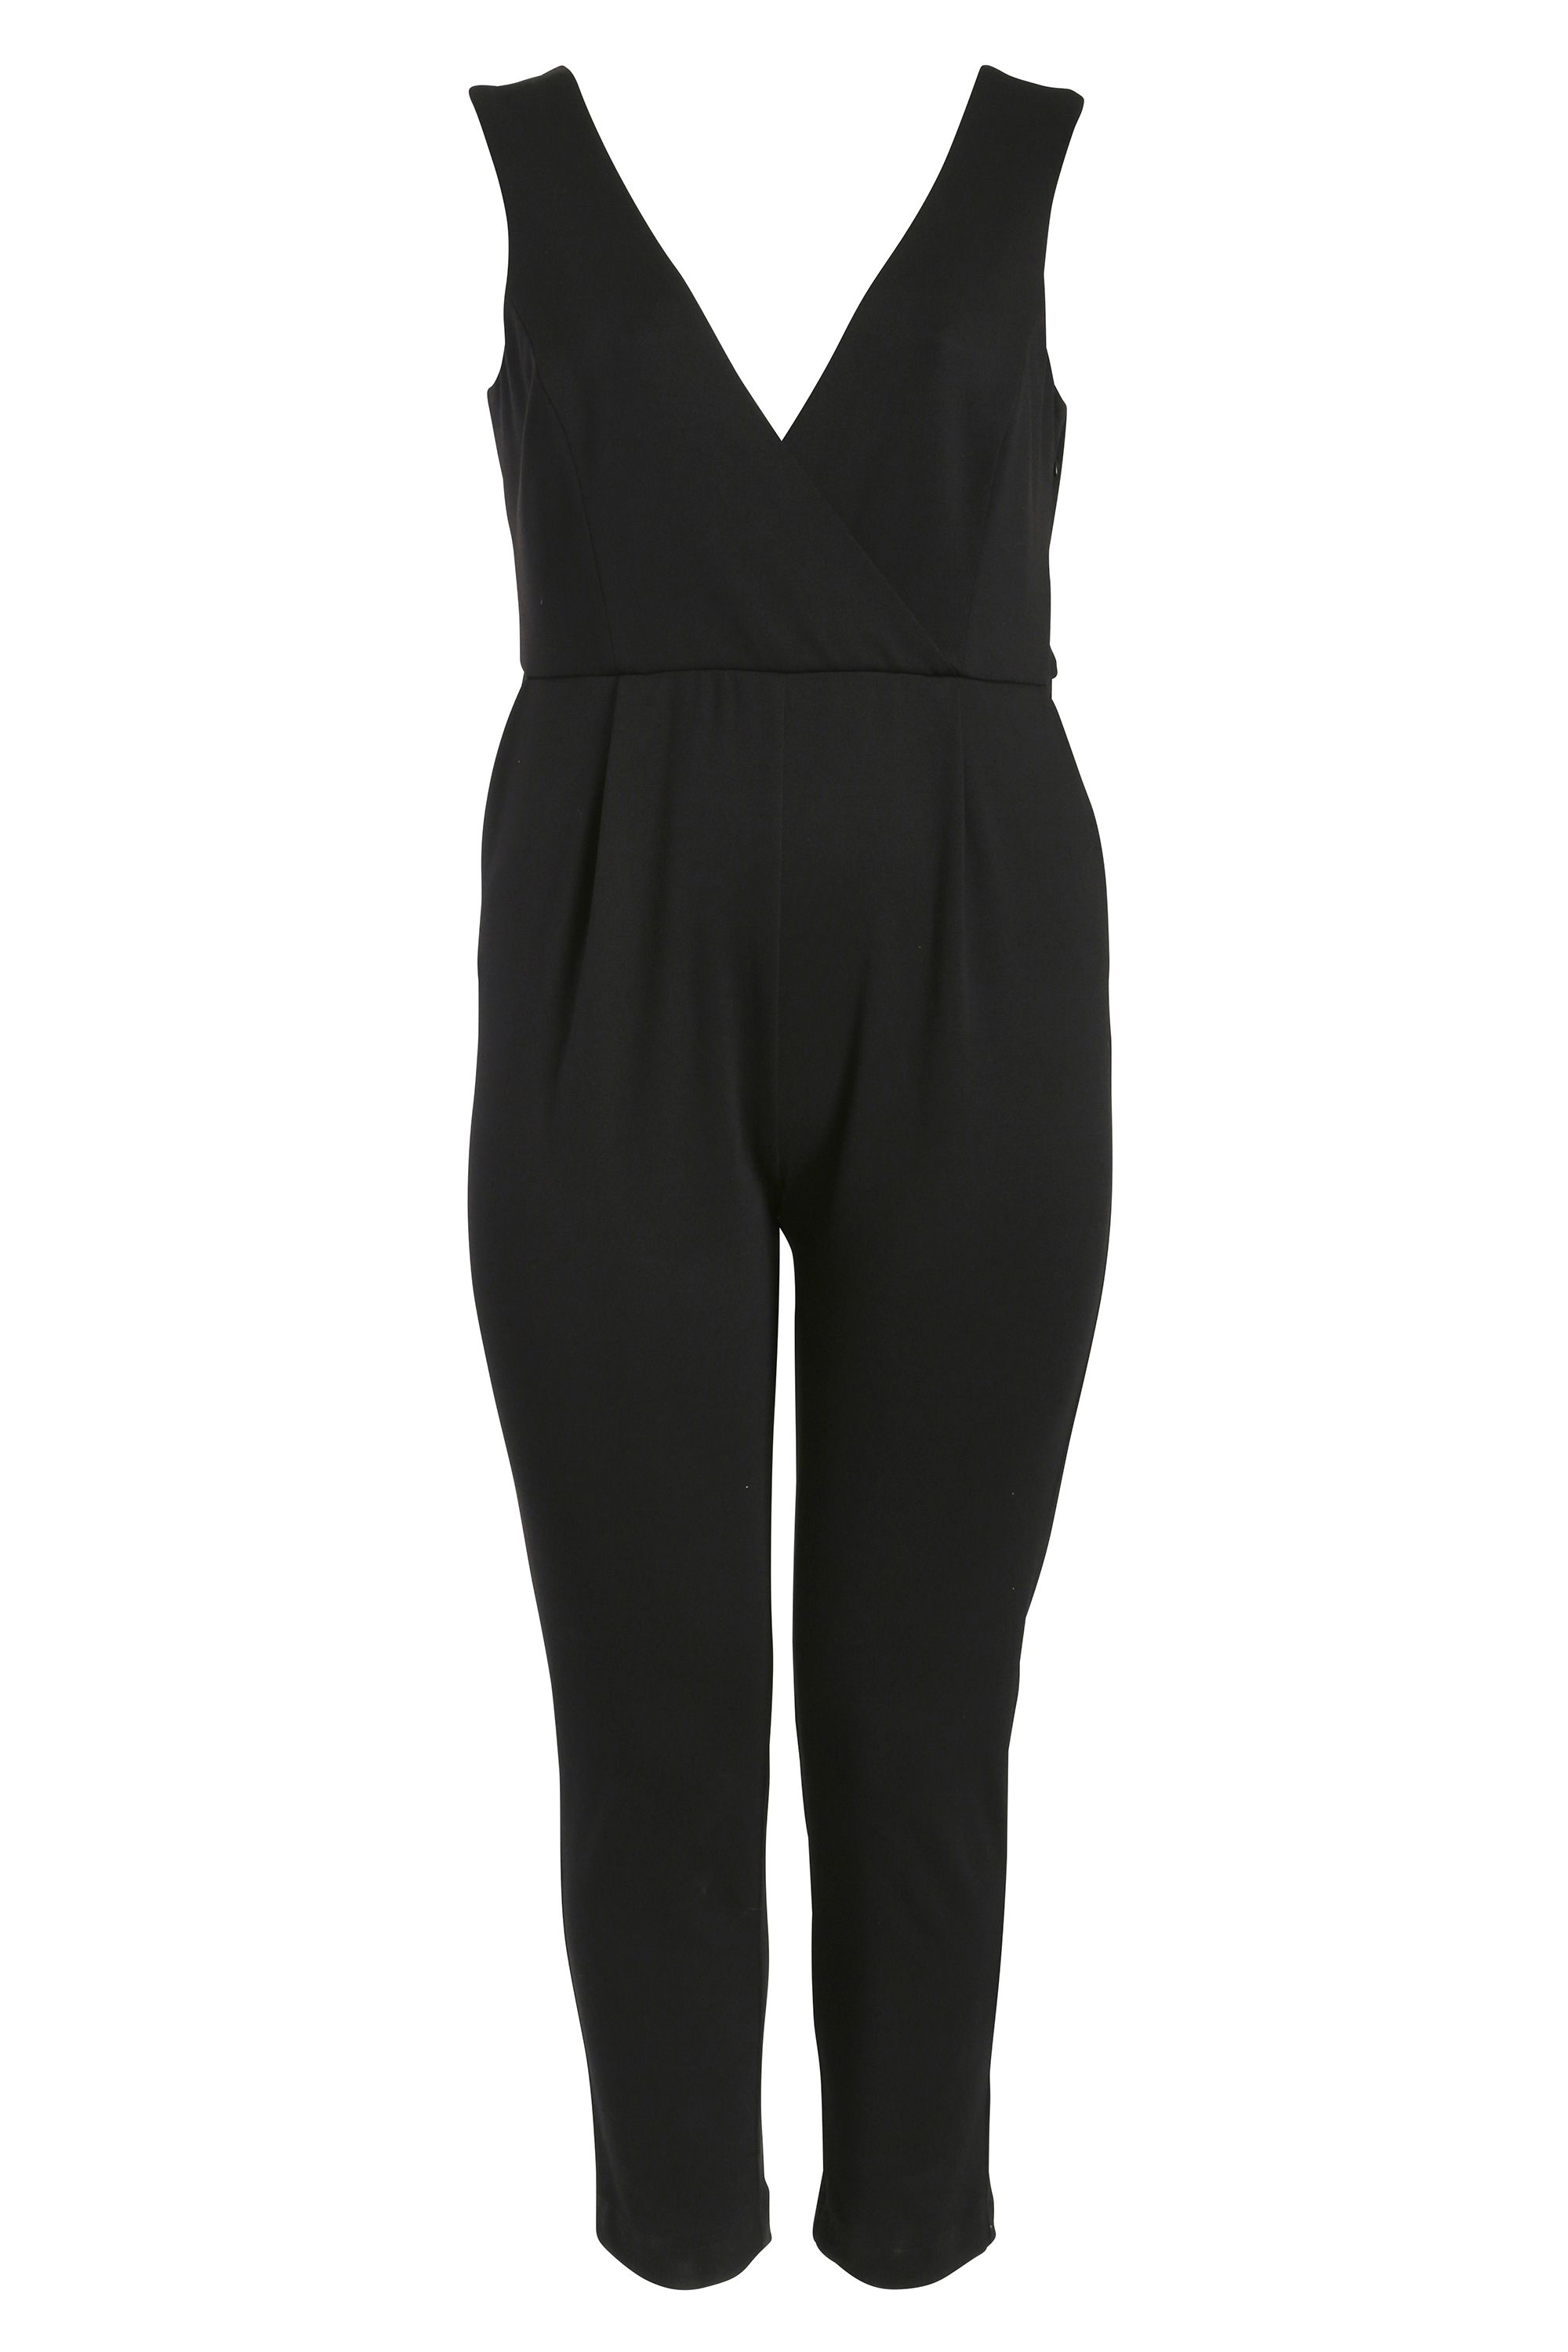 Threads Threads Wrap Over Jumpsuit, Black